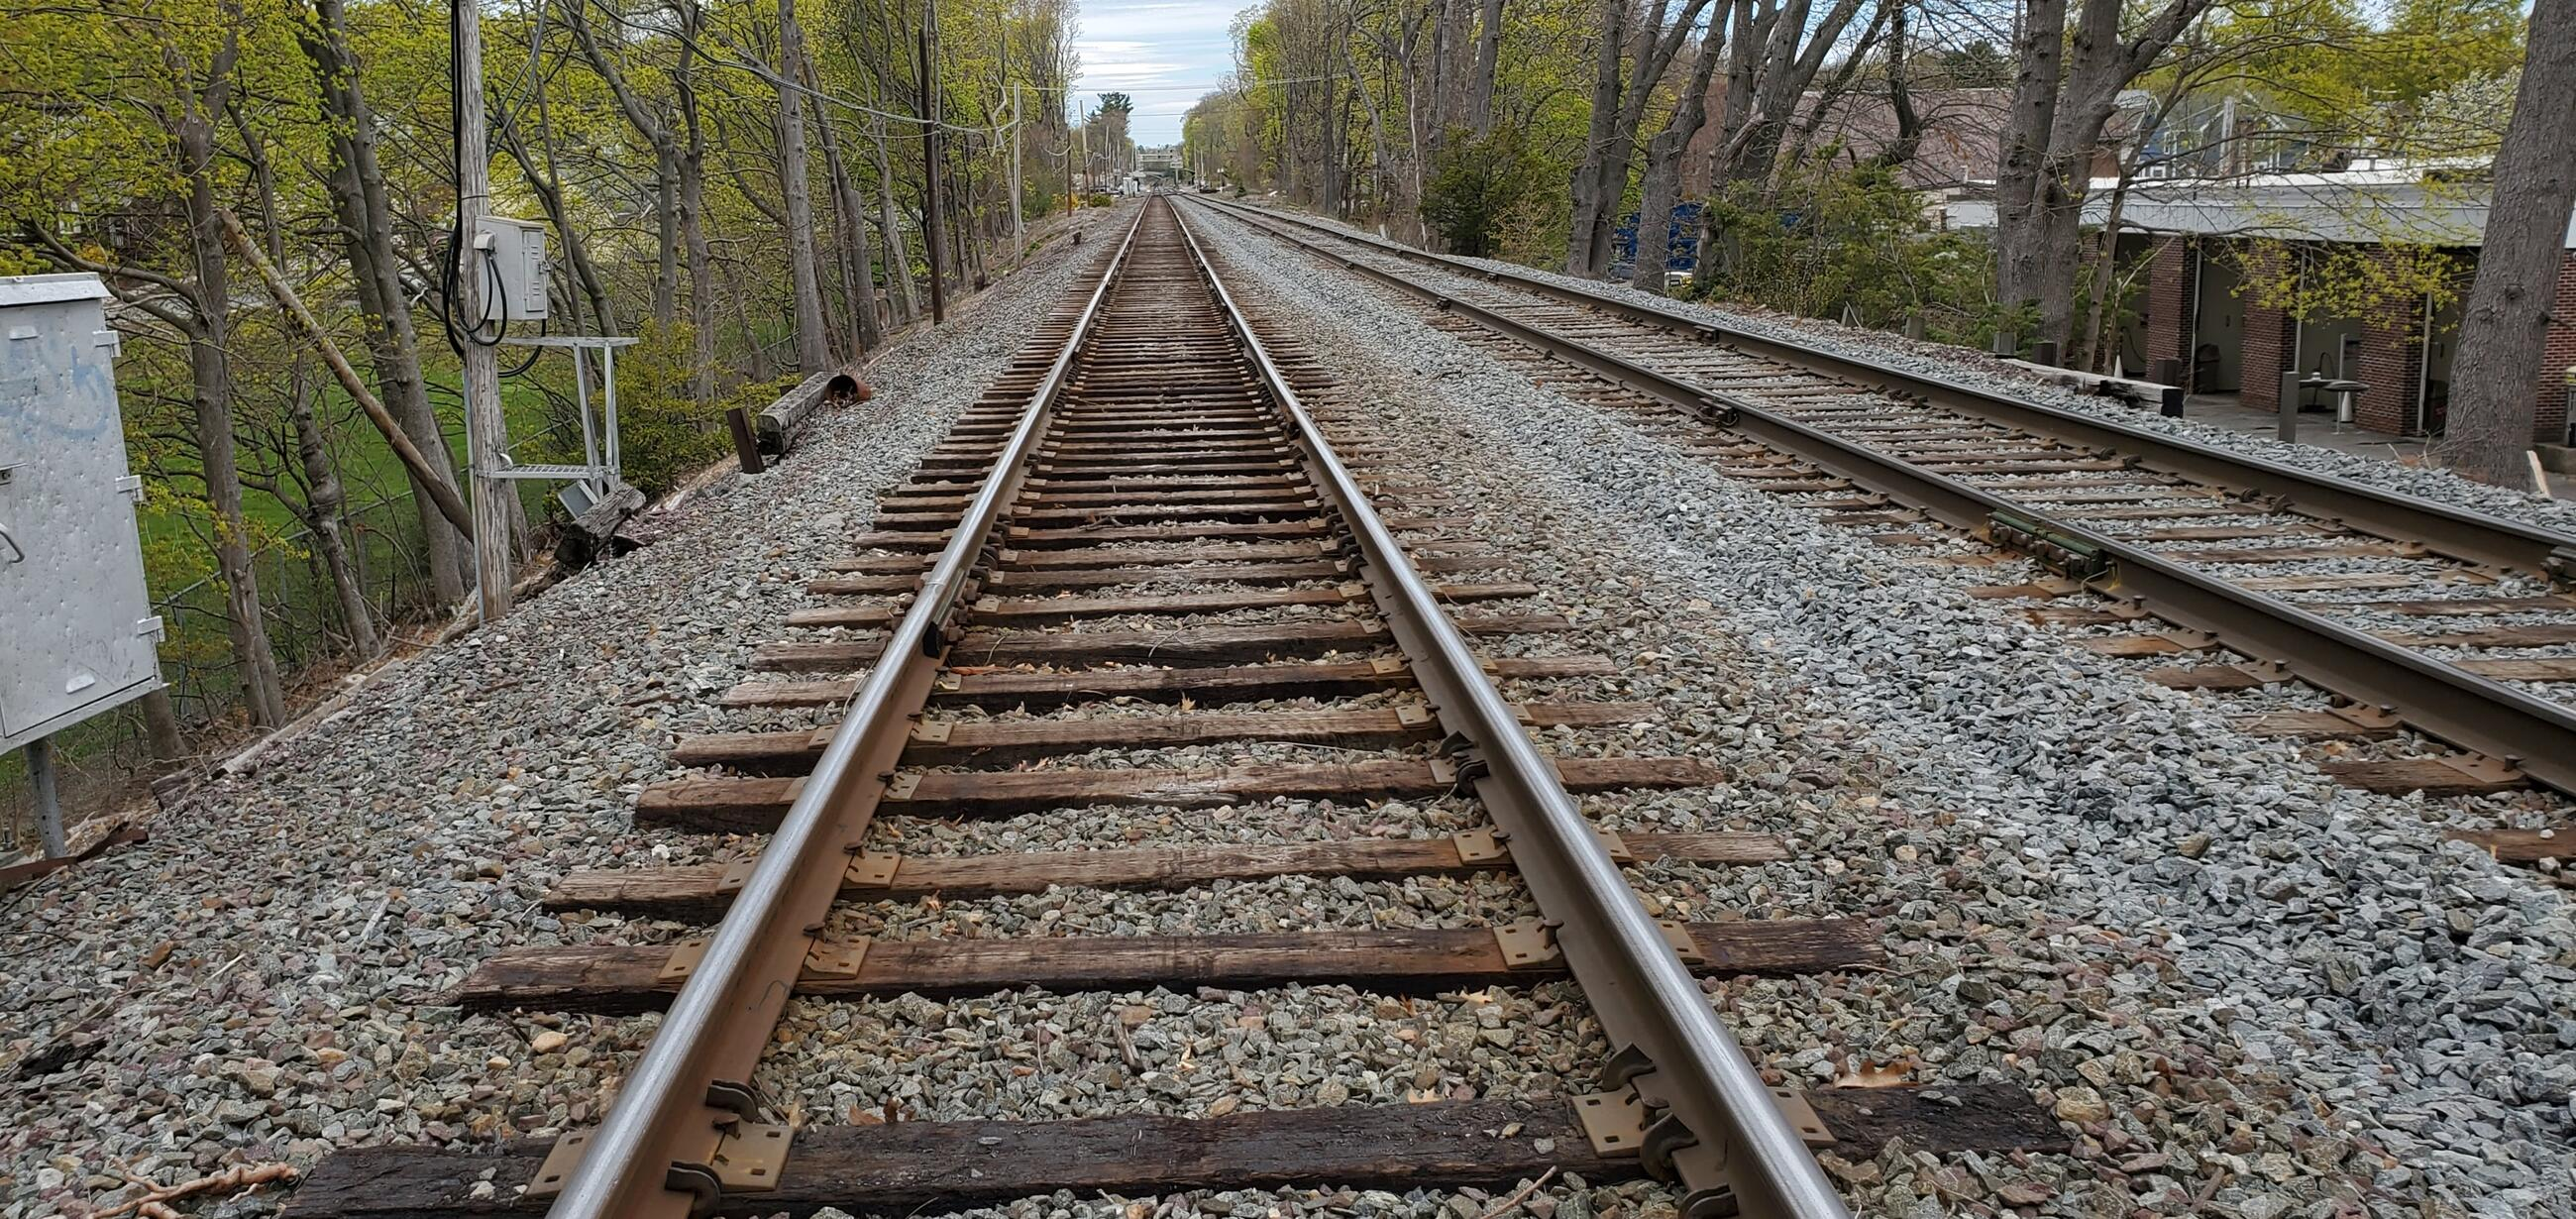 A length of empty Commuter Rail rail and tracks is shown from a vantage point next to the center of the tracks, between the rails, with the track disappearing into the distance at the top. Another empty track is to the right. The two tracks are flanked by gravel and trees, with grass at the left and a building at the right.